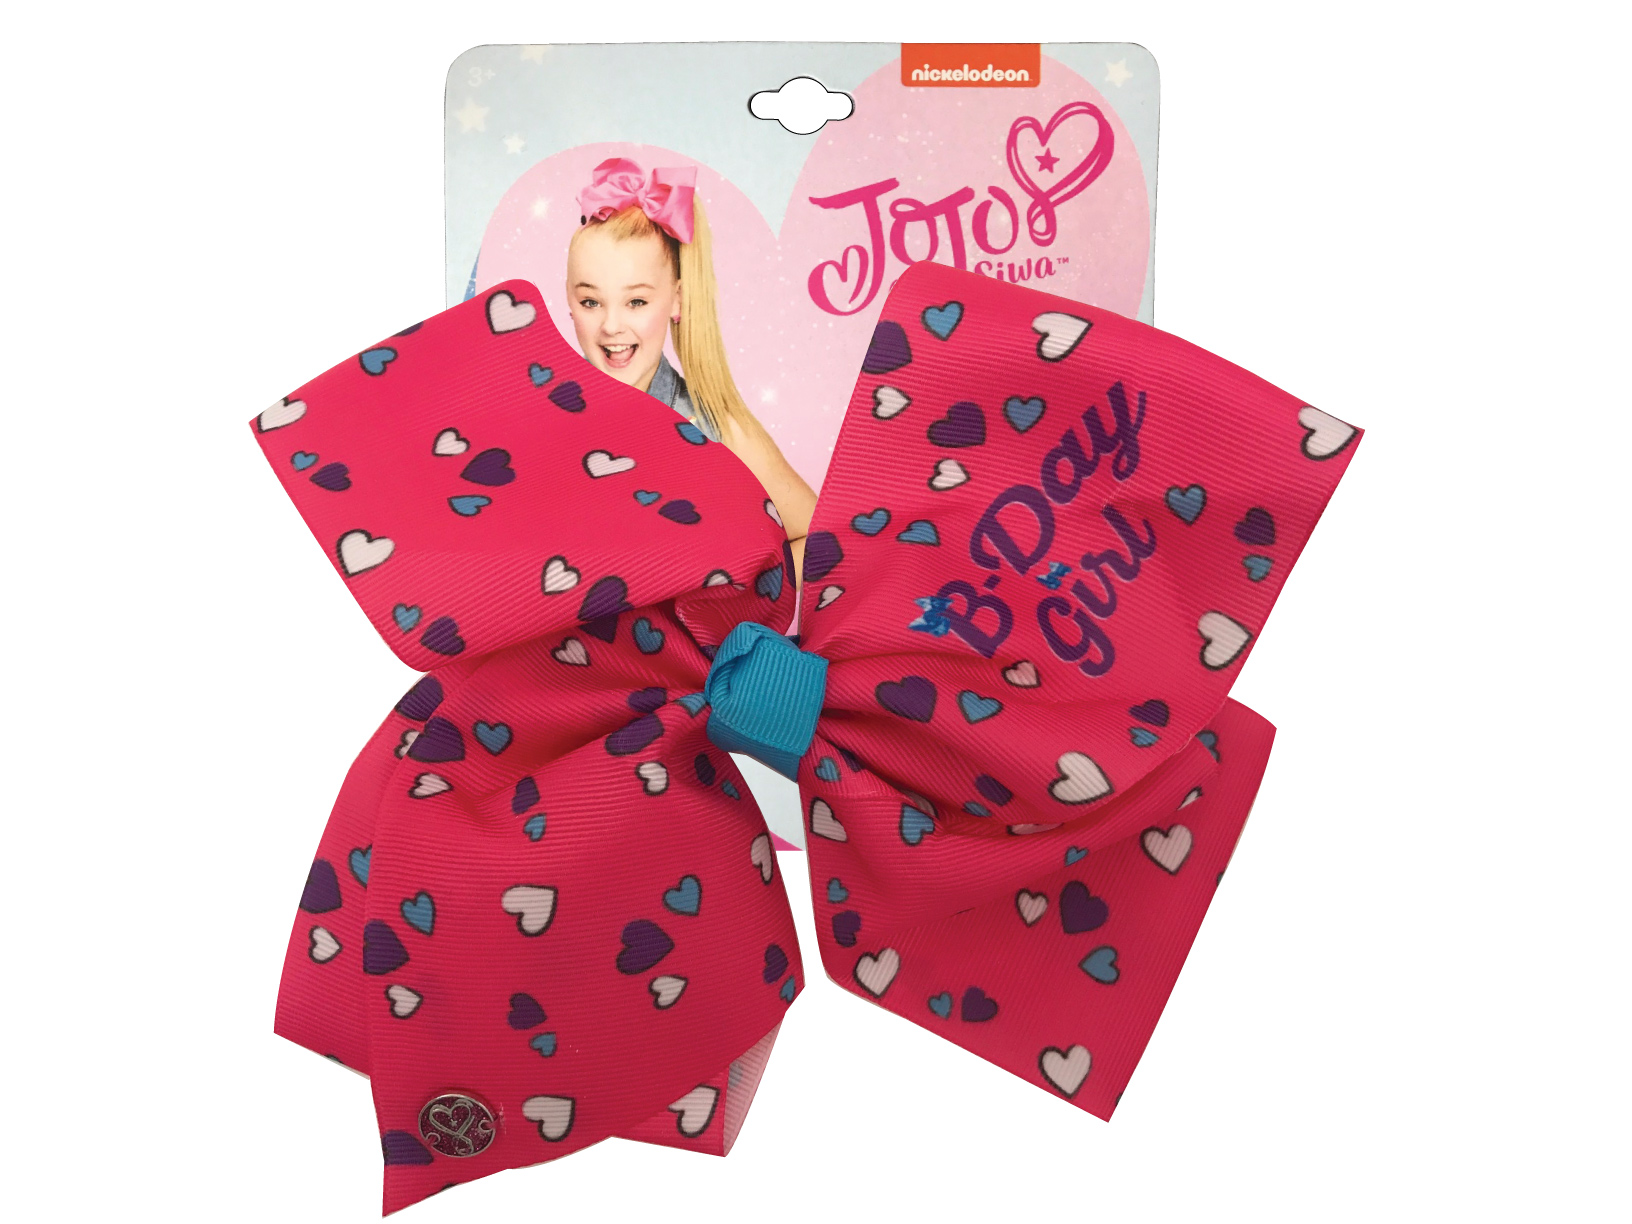 JoJo Siwa Large Cheer Hair Bow (B-Day Girl Pink Hearts)